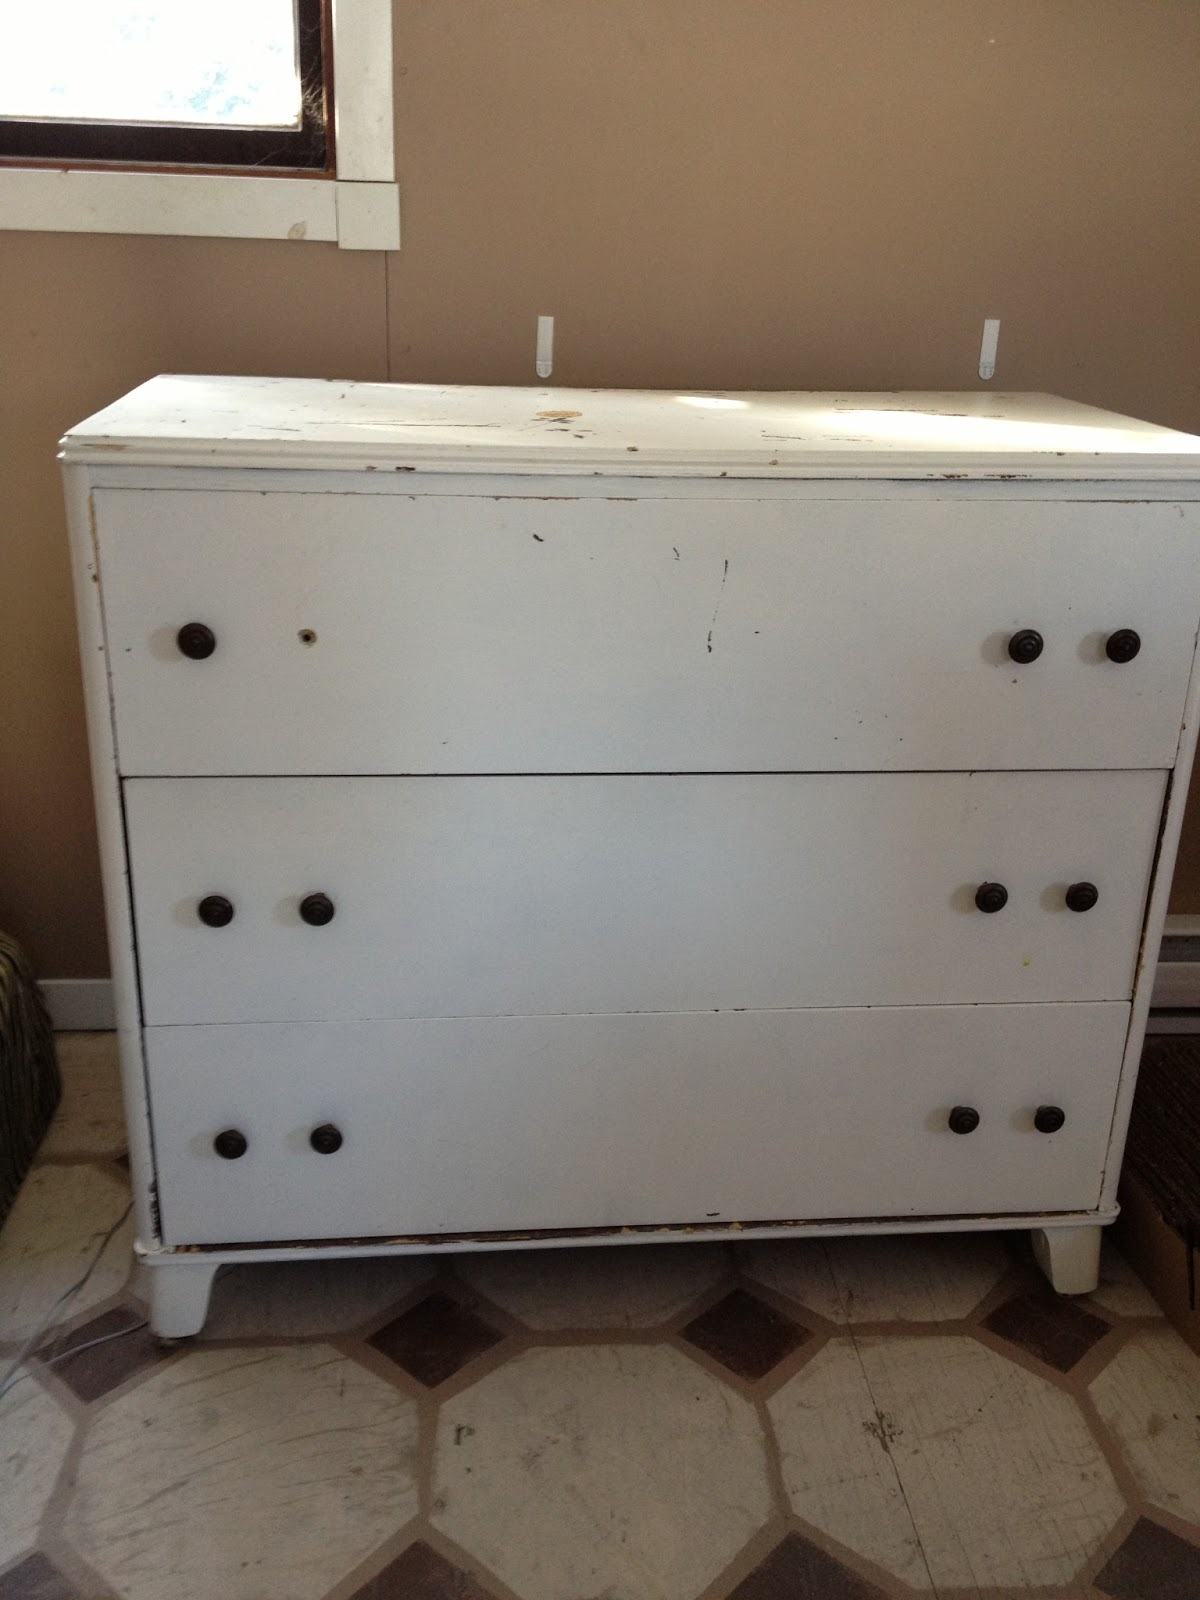 Superieur My Son Is In Need Of A Bathroom Vanity For The Laundry Room/bathroom In His  New House. This Dresser Is A ...